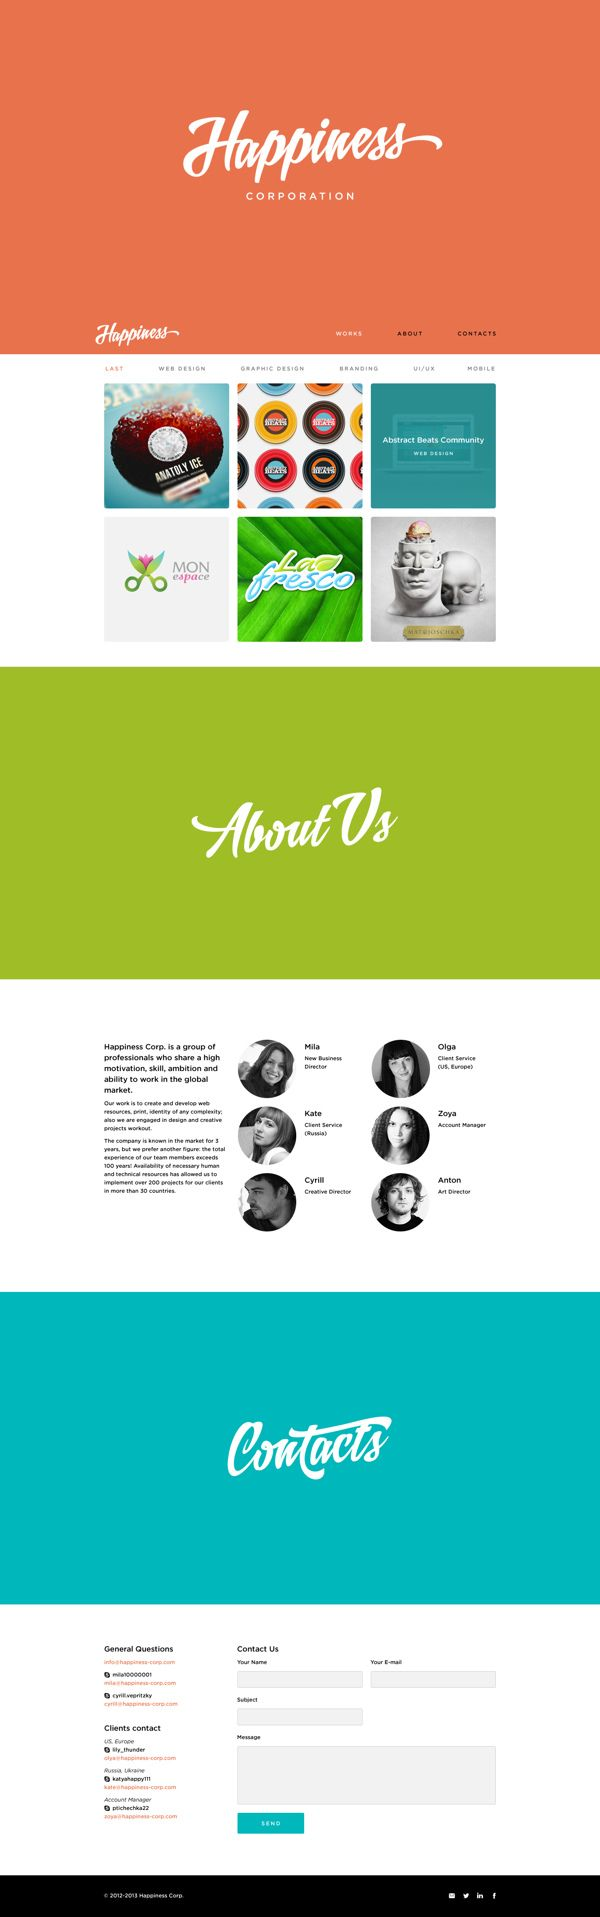 Website Web Design Inspiration Pinned From Latest News Trends On